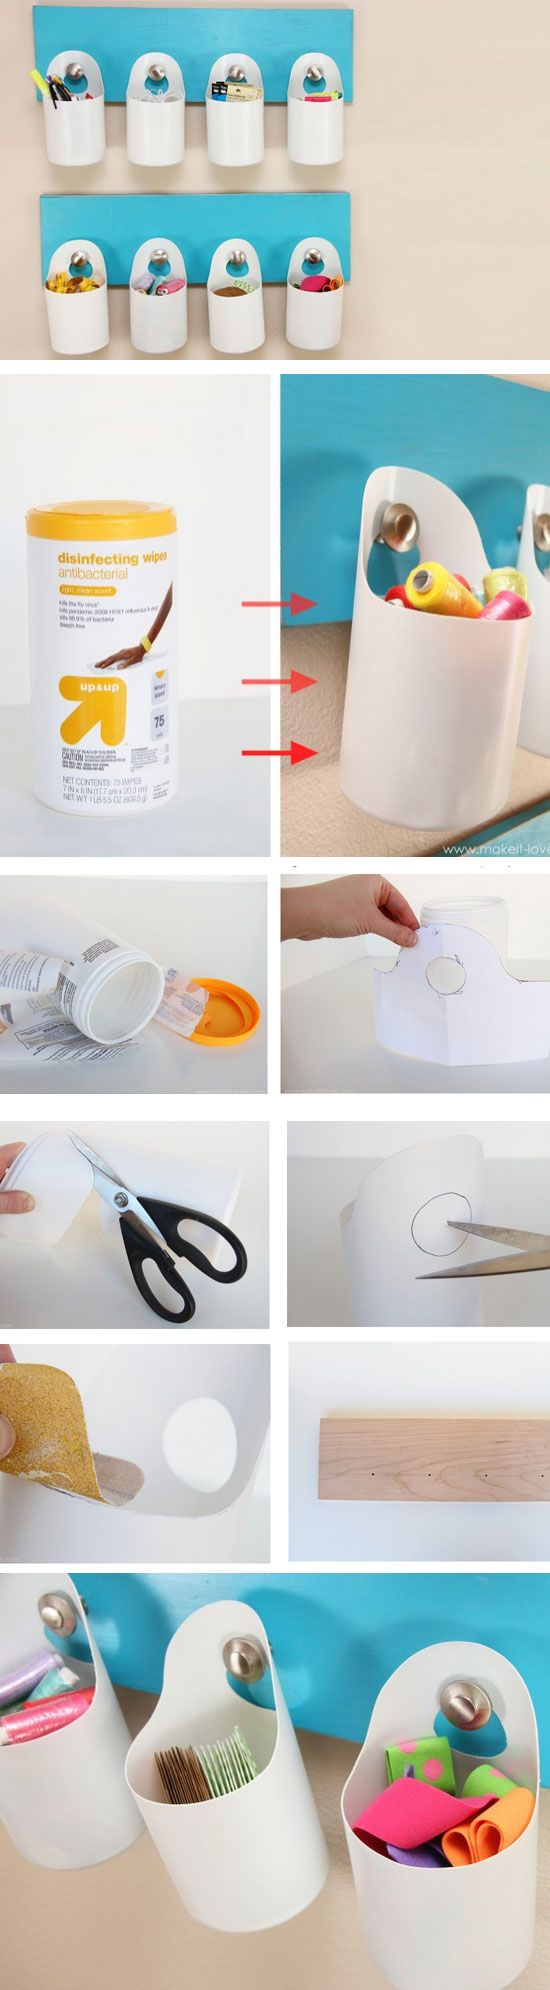 Hanging Storage Bins | Click Pick for 24 DIY Organization Ideas for The Home | DIY Storage Ideas for Small Spaces